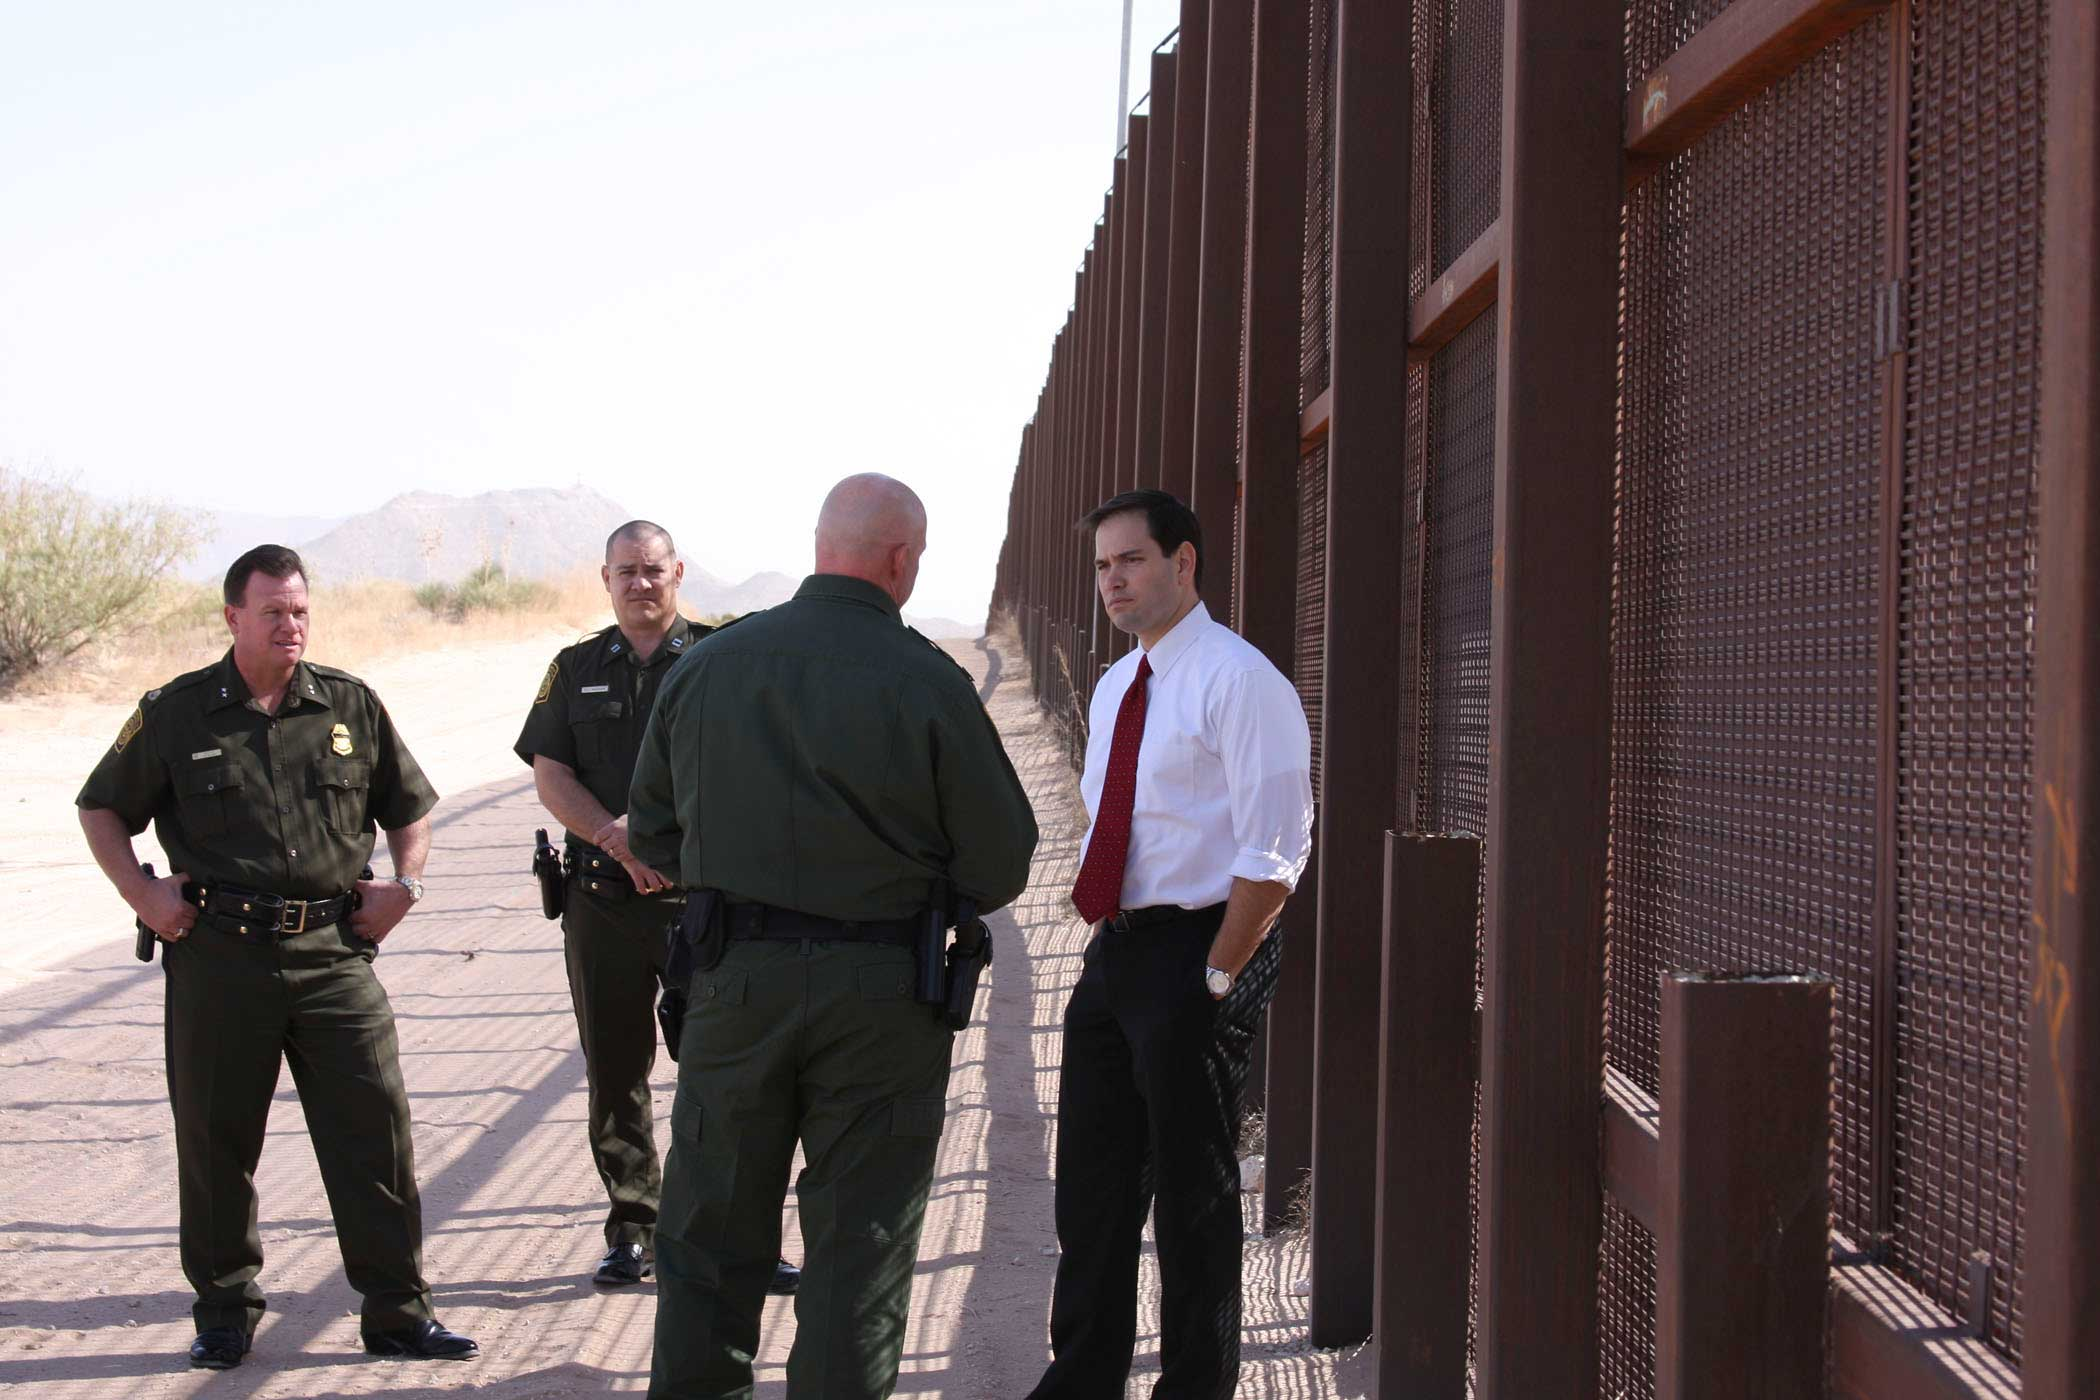 Senator Marco Rubio during a visit to the El Paso sector of the United States/Mexico border on Nov. 4, 2011.